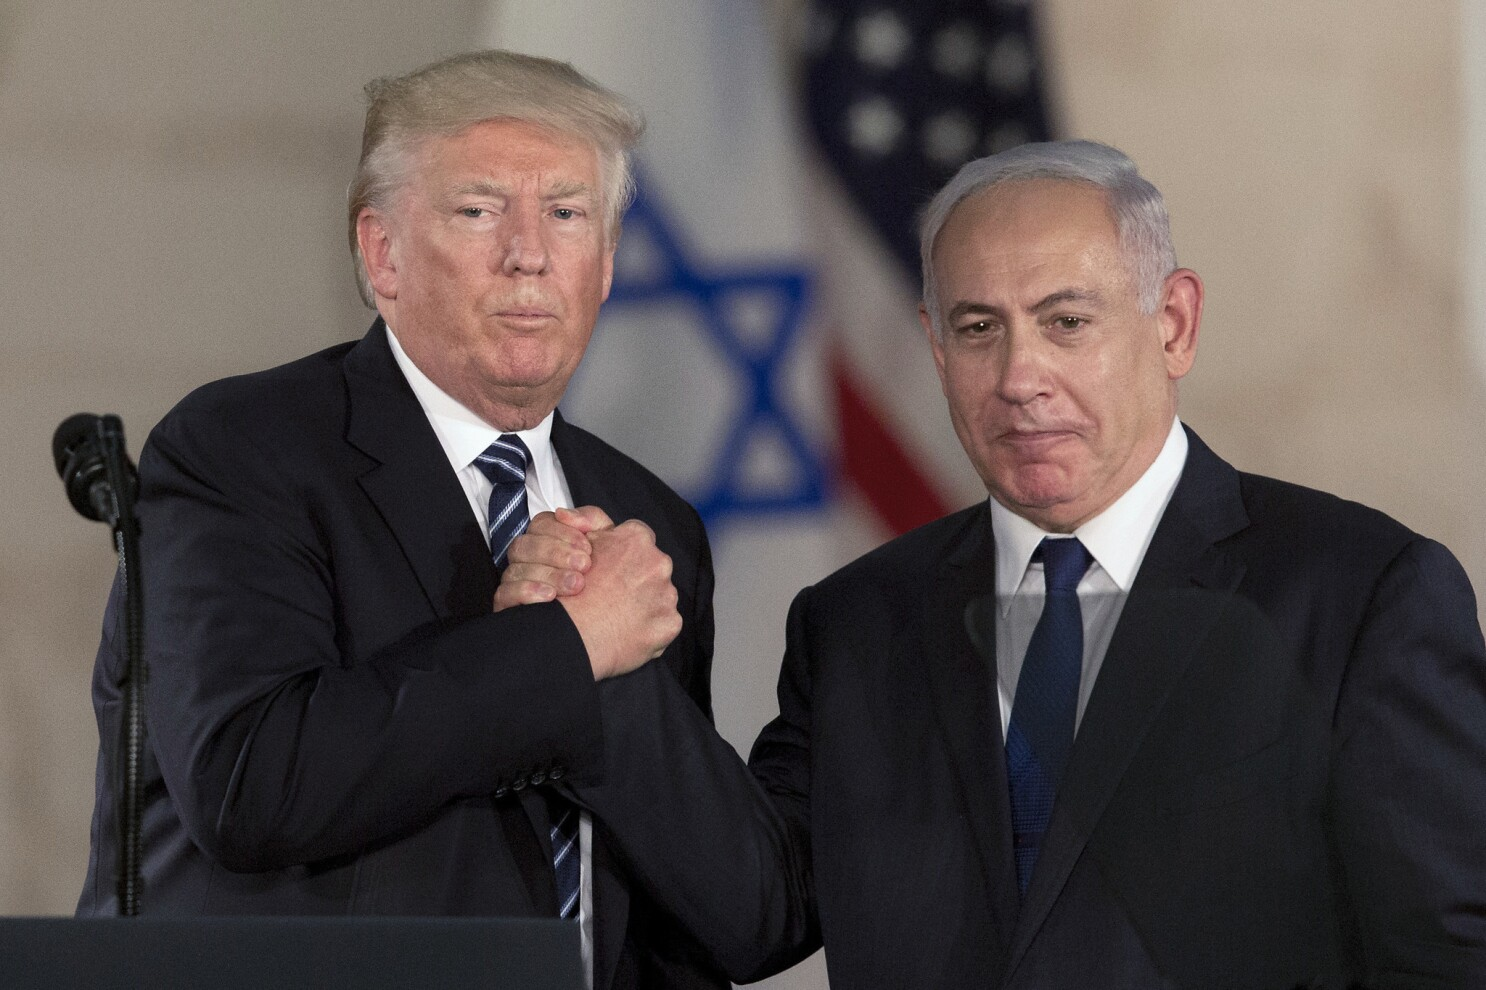 The Trump-Netanyahu bromance appears over. What's that mean for ...